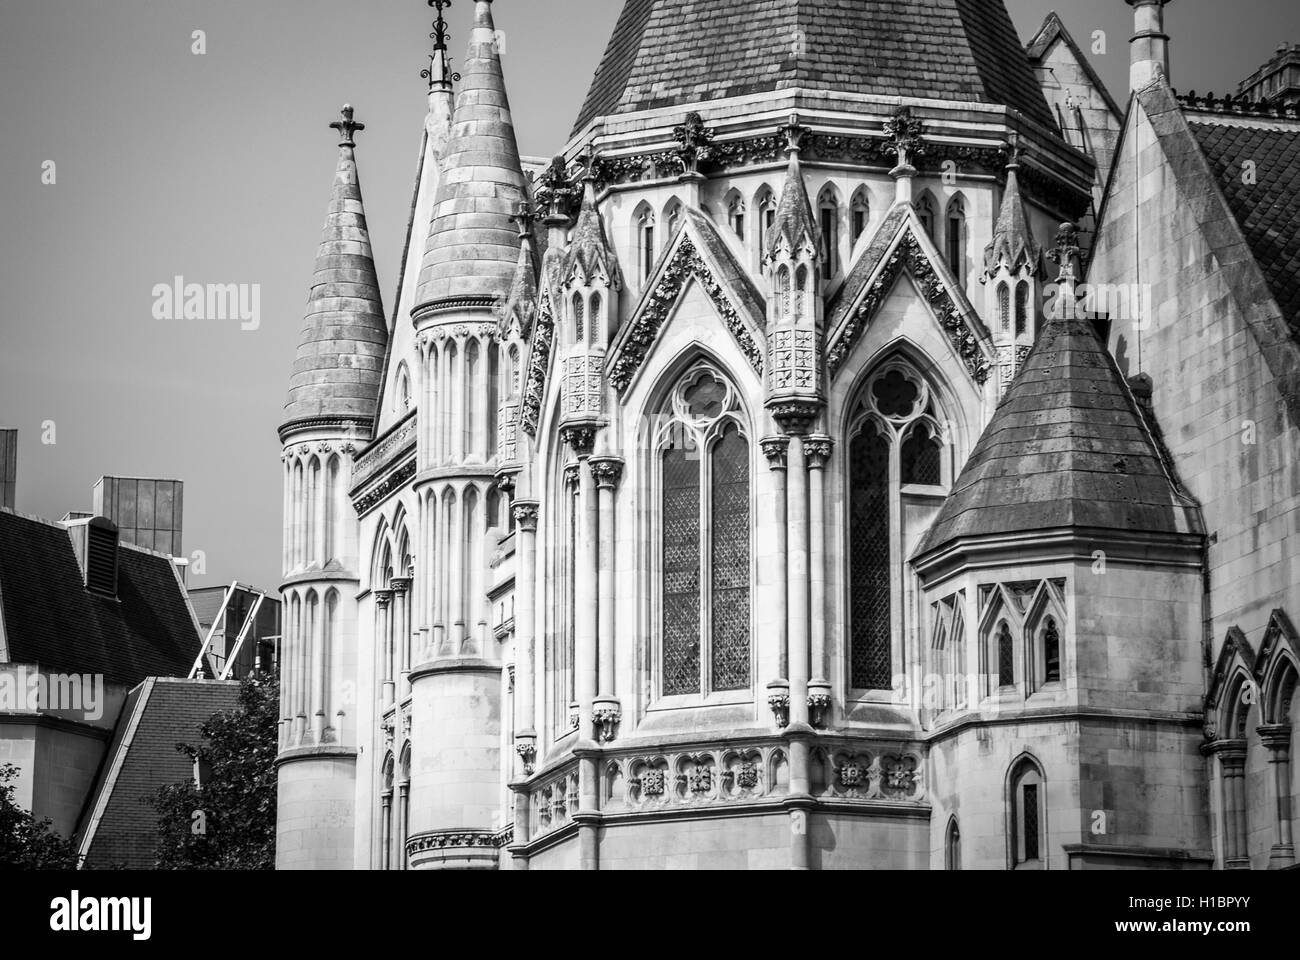 London's Royal Courts of Justice in the Strand, London. The building was designed by George Edmund Street and - Stock Image